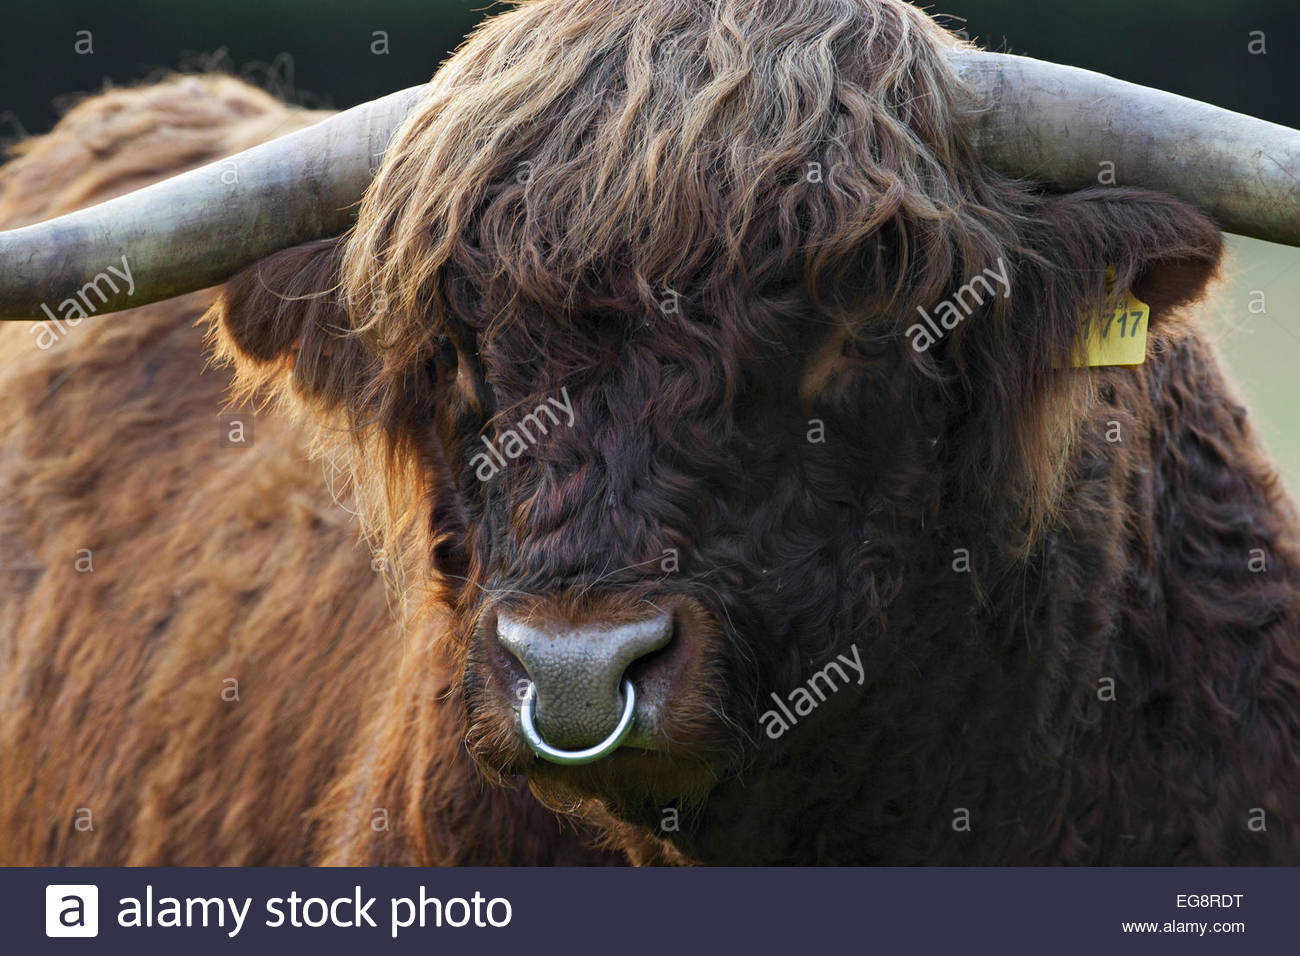 Bull Cow Head Nose Ring Stock Photos Bull Cow Head Nose Ring Stock